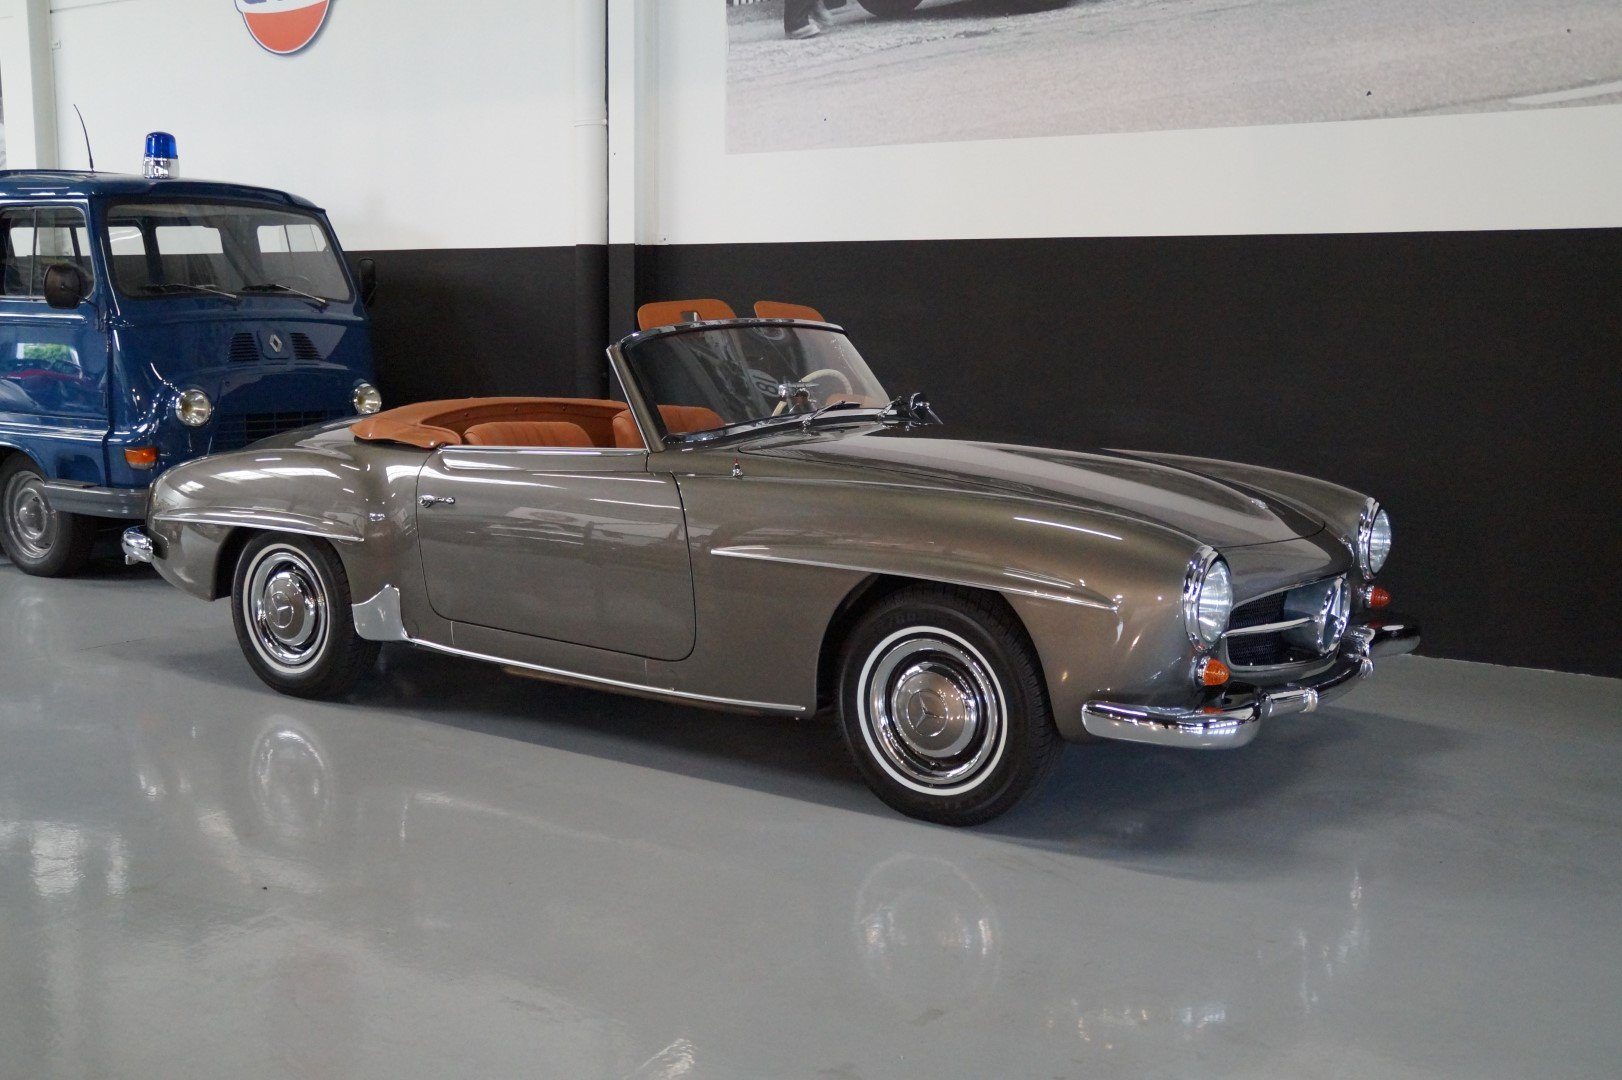 MERCEDES-BENZ 190 SL 190SL Concourse restored (1957) For Sale (picture 1 of 6)